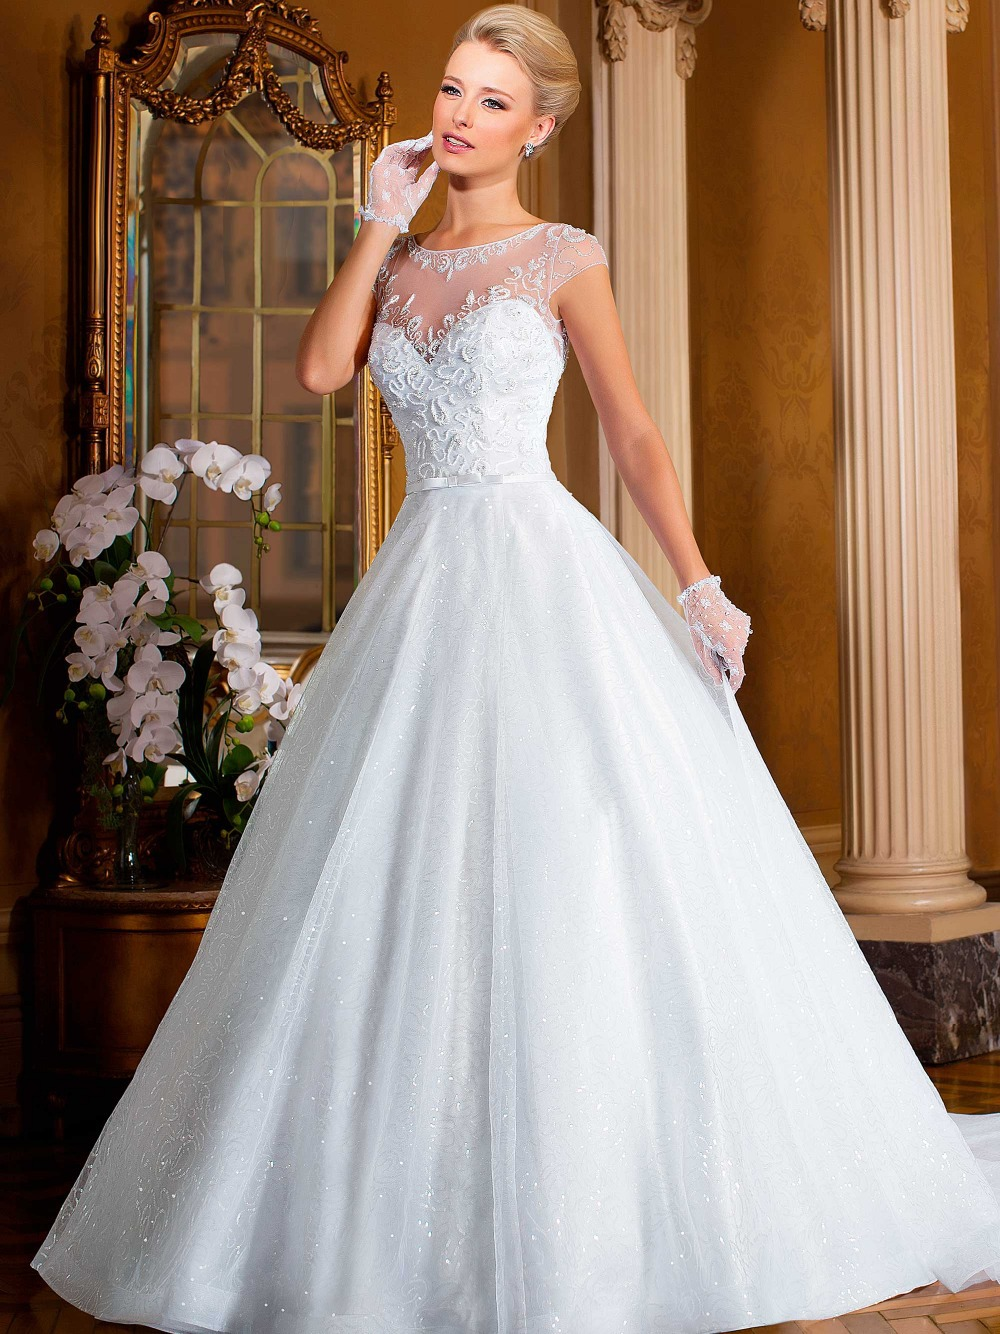 White Sequin Wedding Dress Images